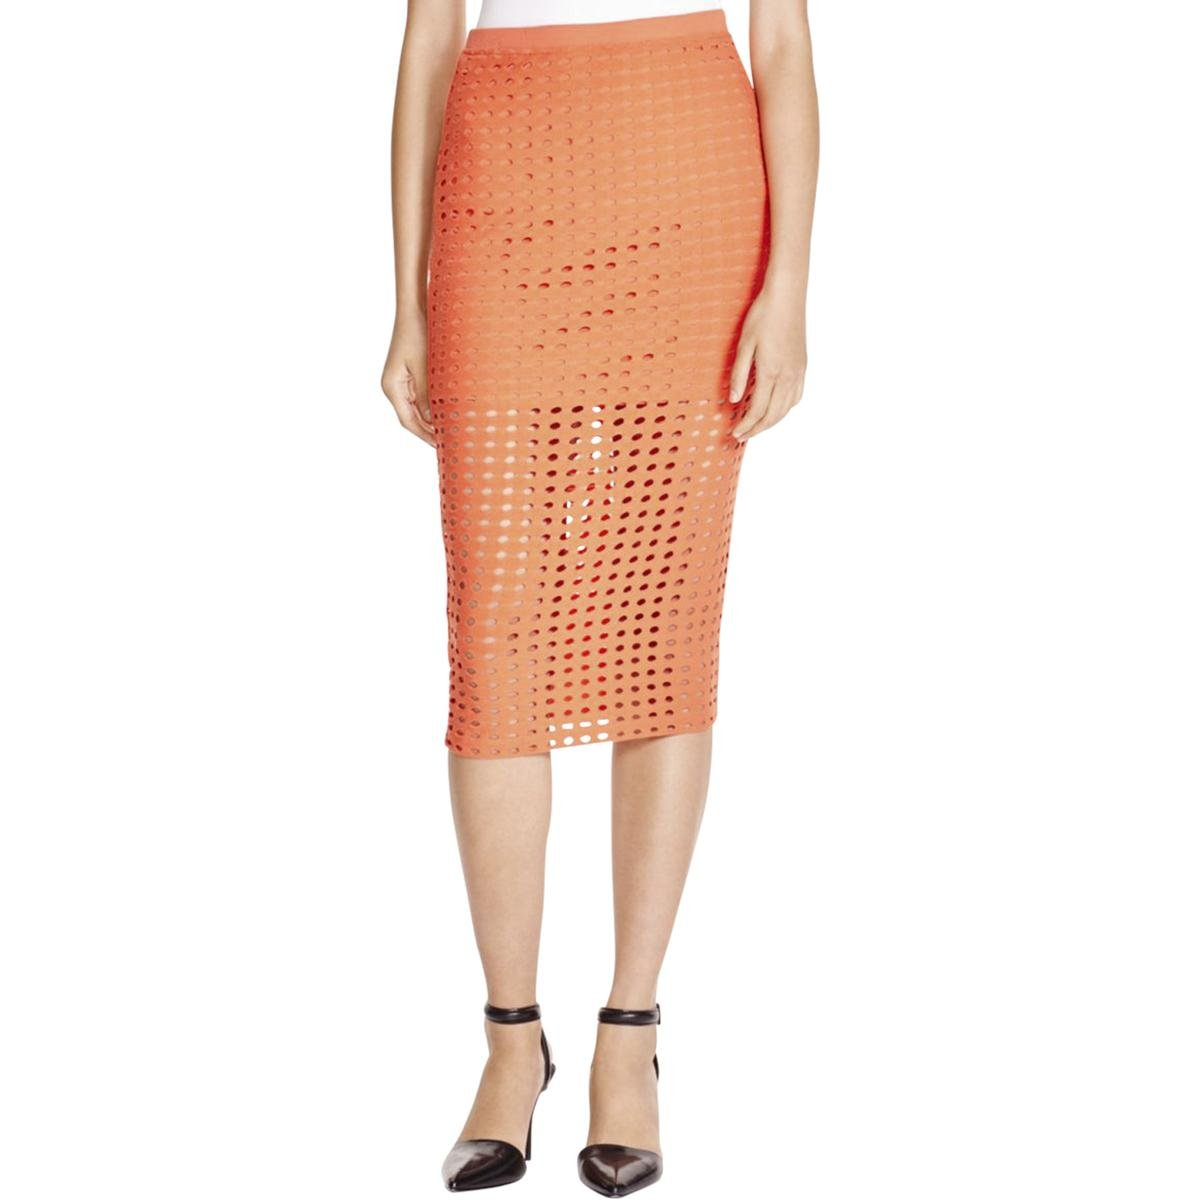 T by Alexander Wang Womens Jersey Cut-Out A-Line Skirt Orange XS